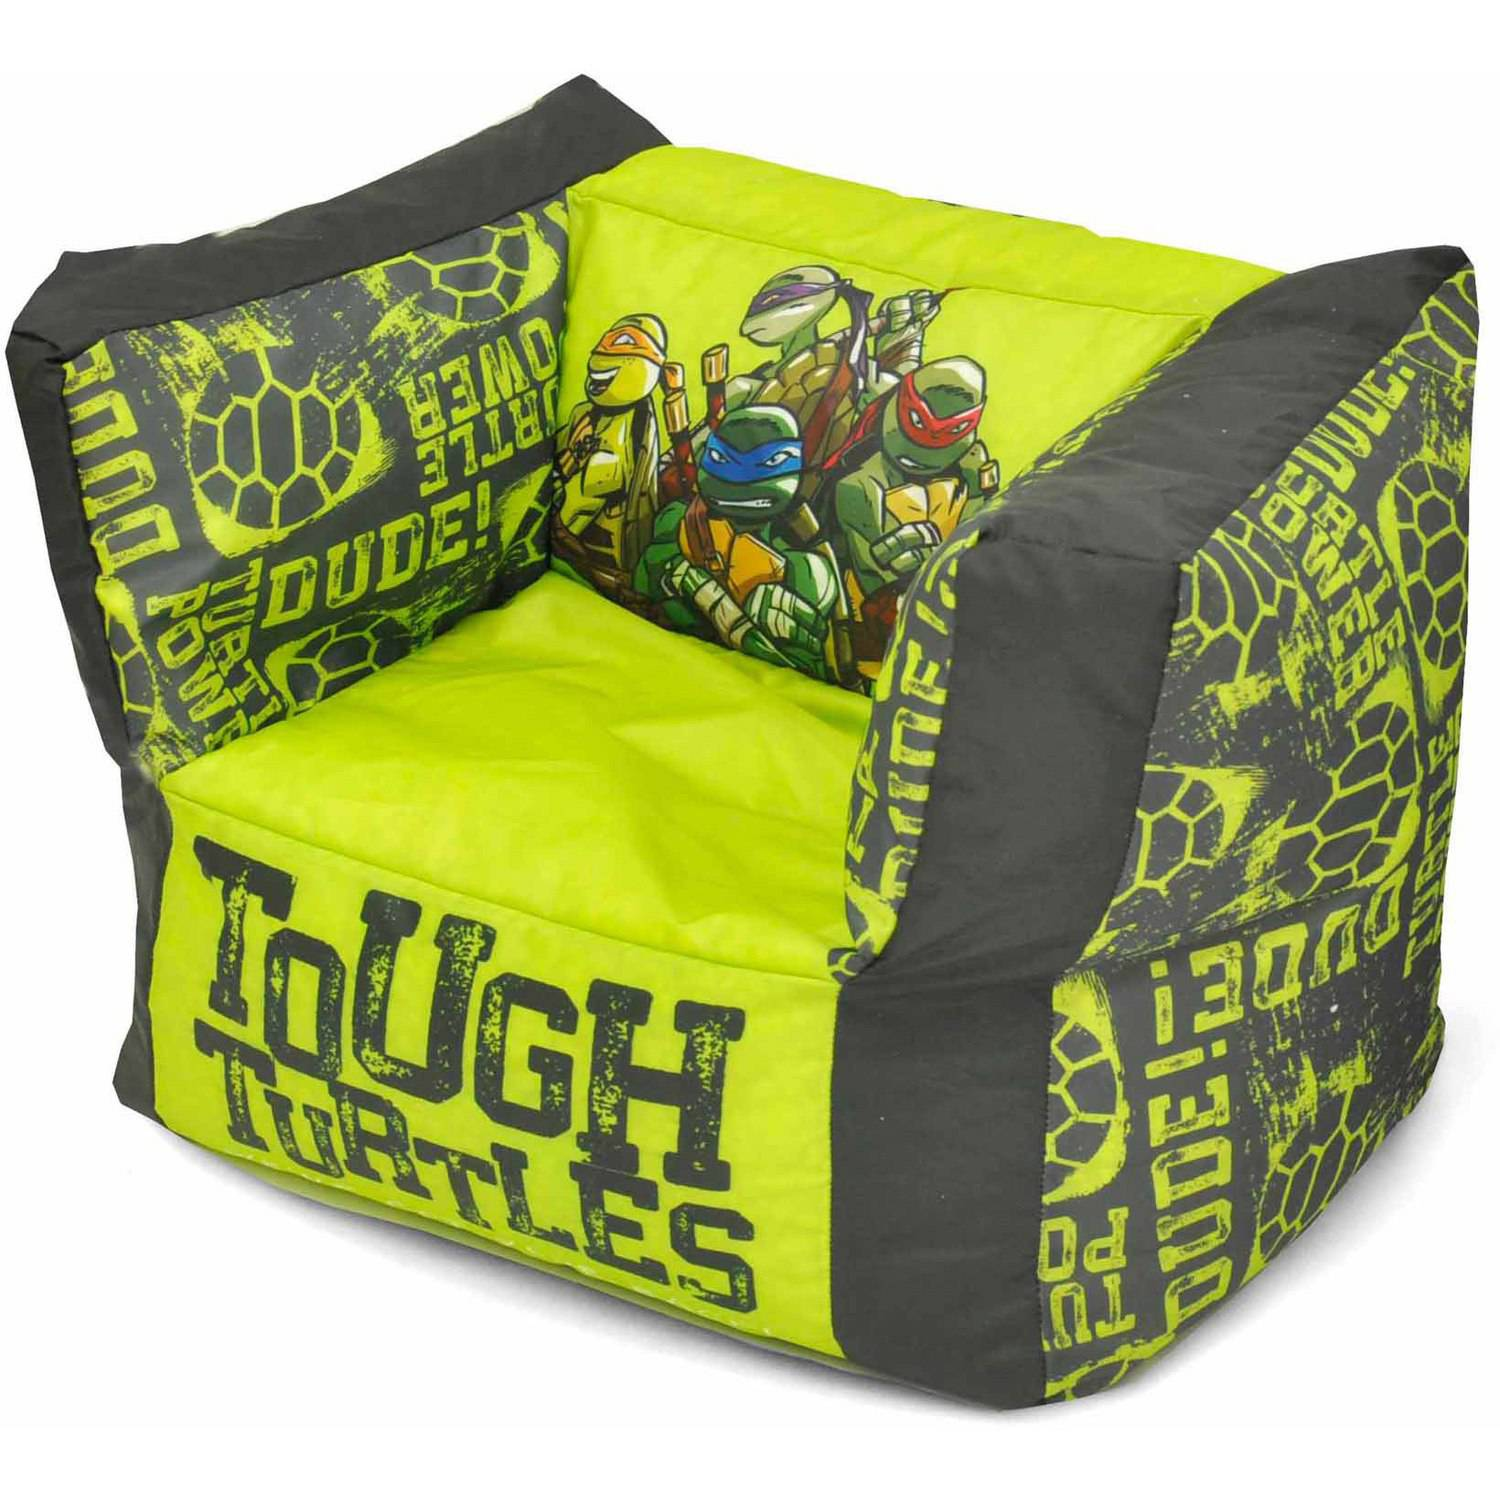 Bean Bag Chair New Ninja Turtles Square Bean Bag Chair Free 2 Day